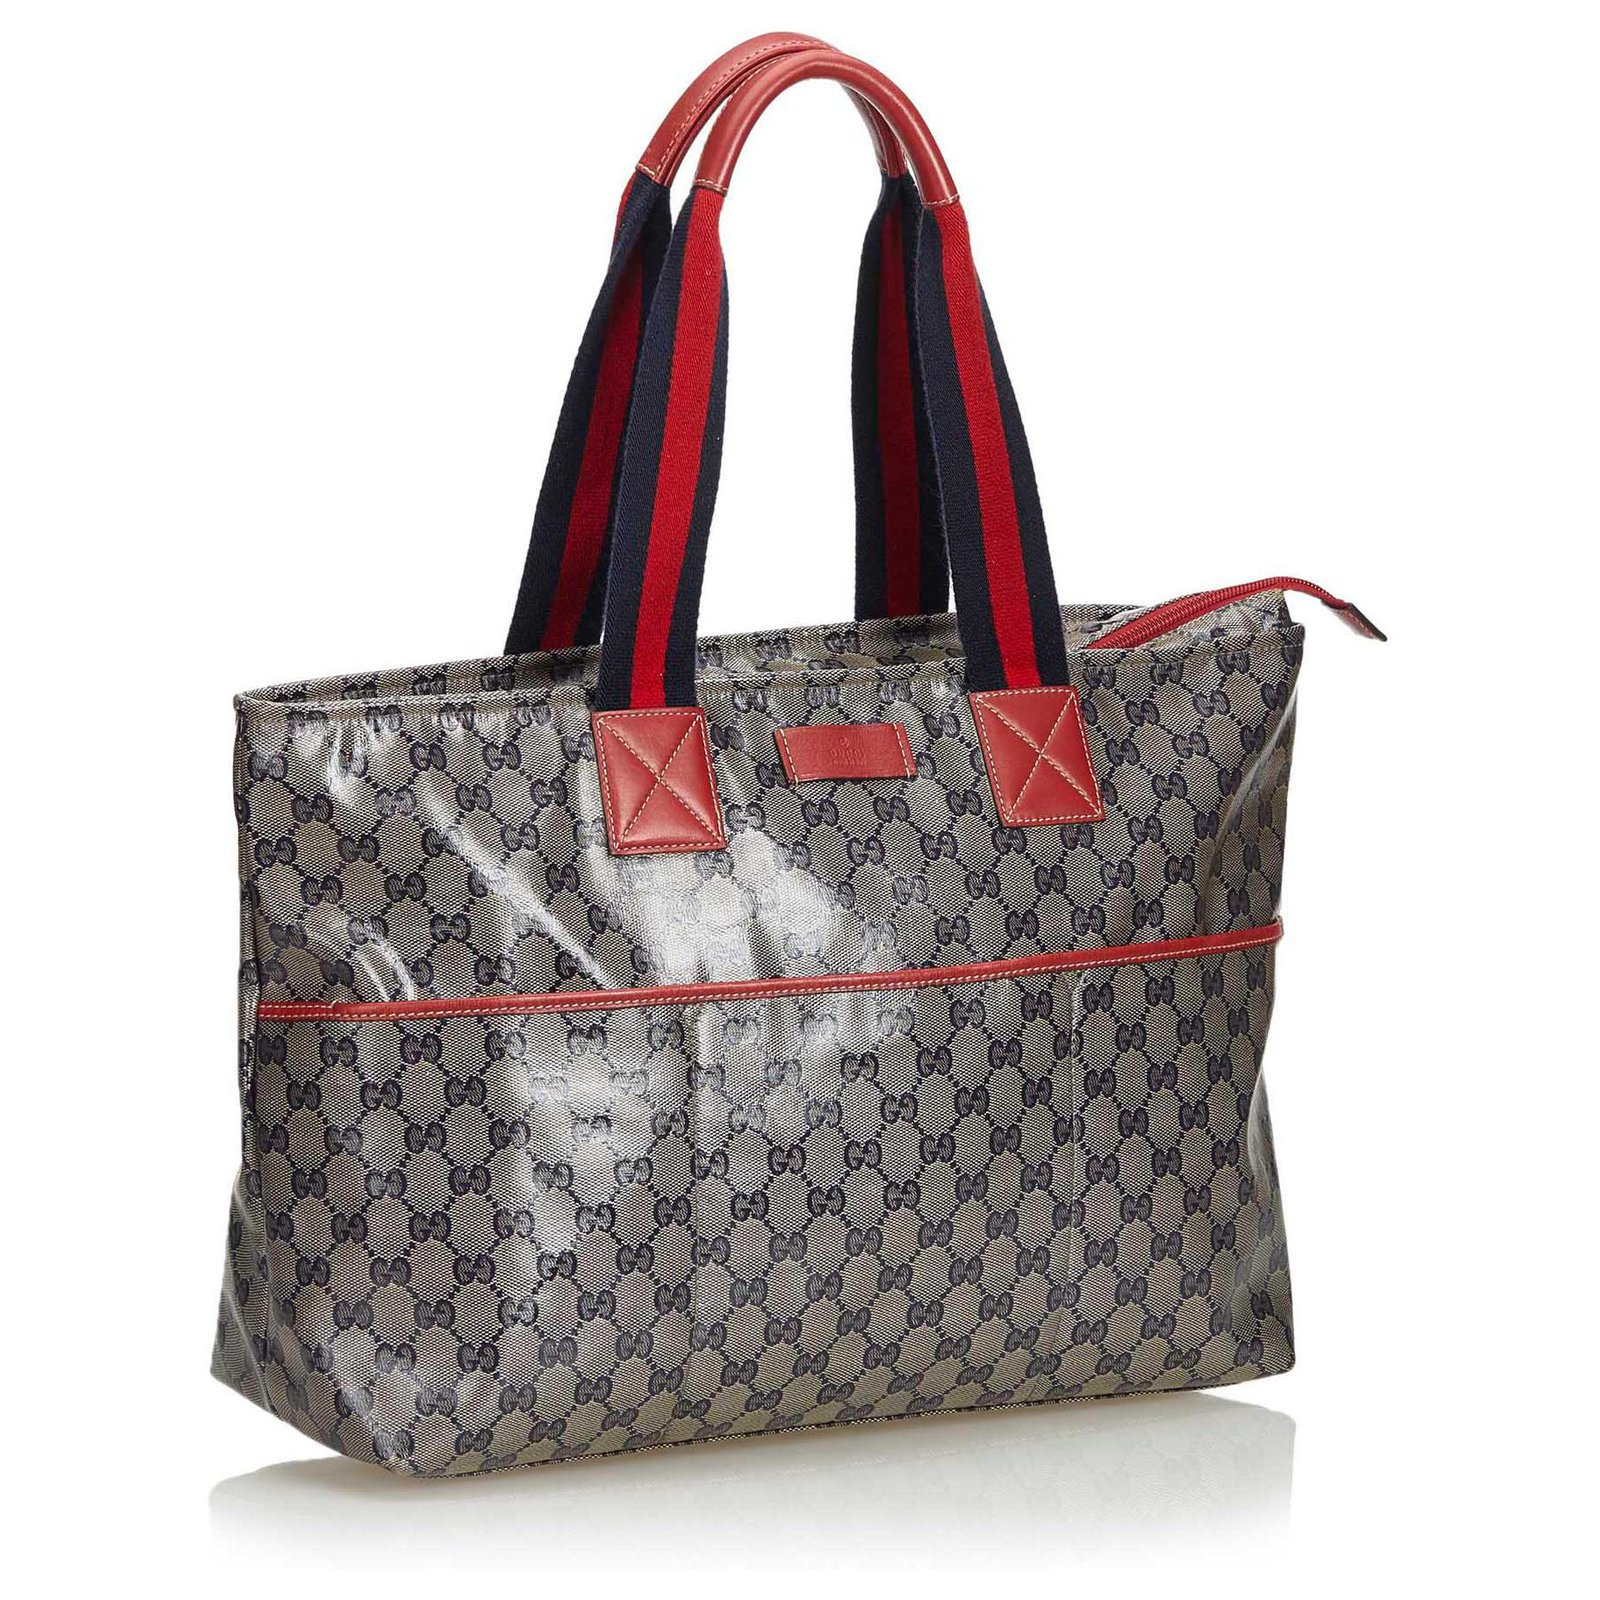 34912a12c Facebook · Pin This. Gucci Gucci Gray GG Supreme Coated Canvas Tote Bag  Totes Leather ...